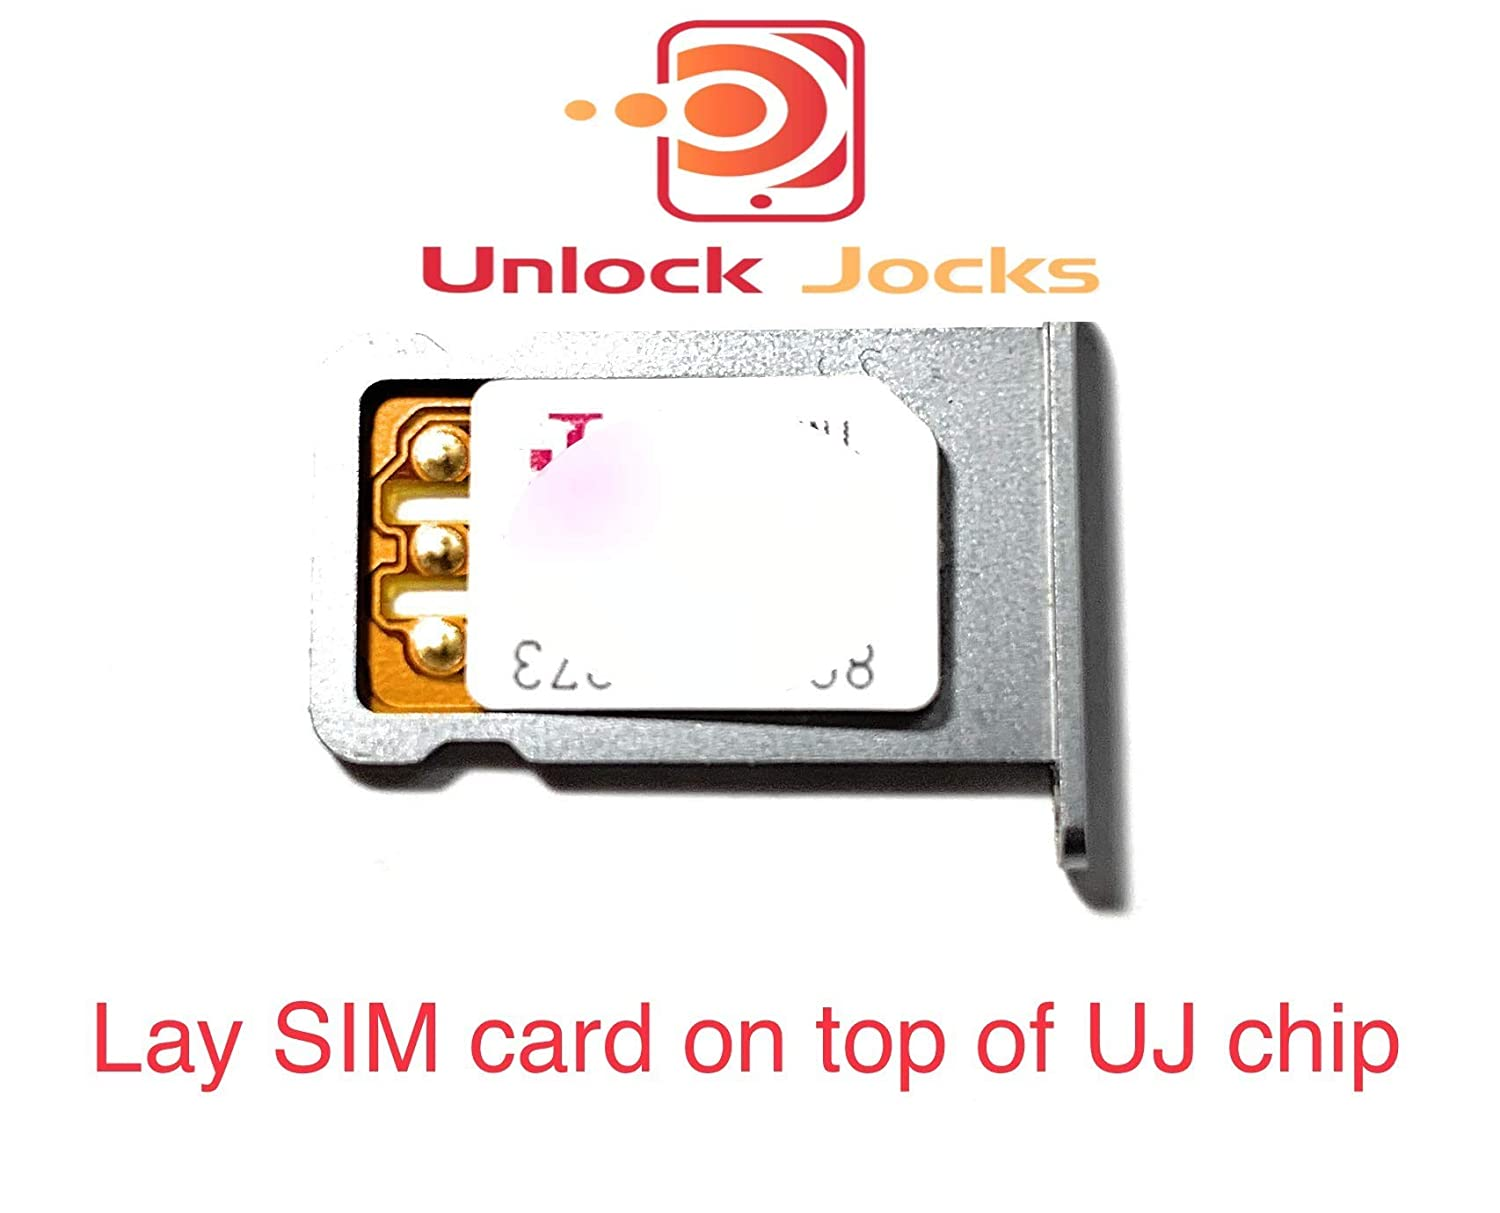 Unlock Jocks's Unlocker ALL CARRIERS Network Card with Kick Stand Accessory  Sim Carrier Card Supports Straight Talk Sprint T-Mobile Verizon AT&T &